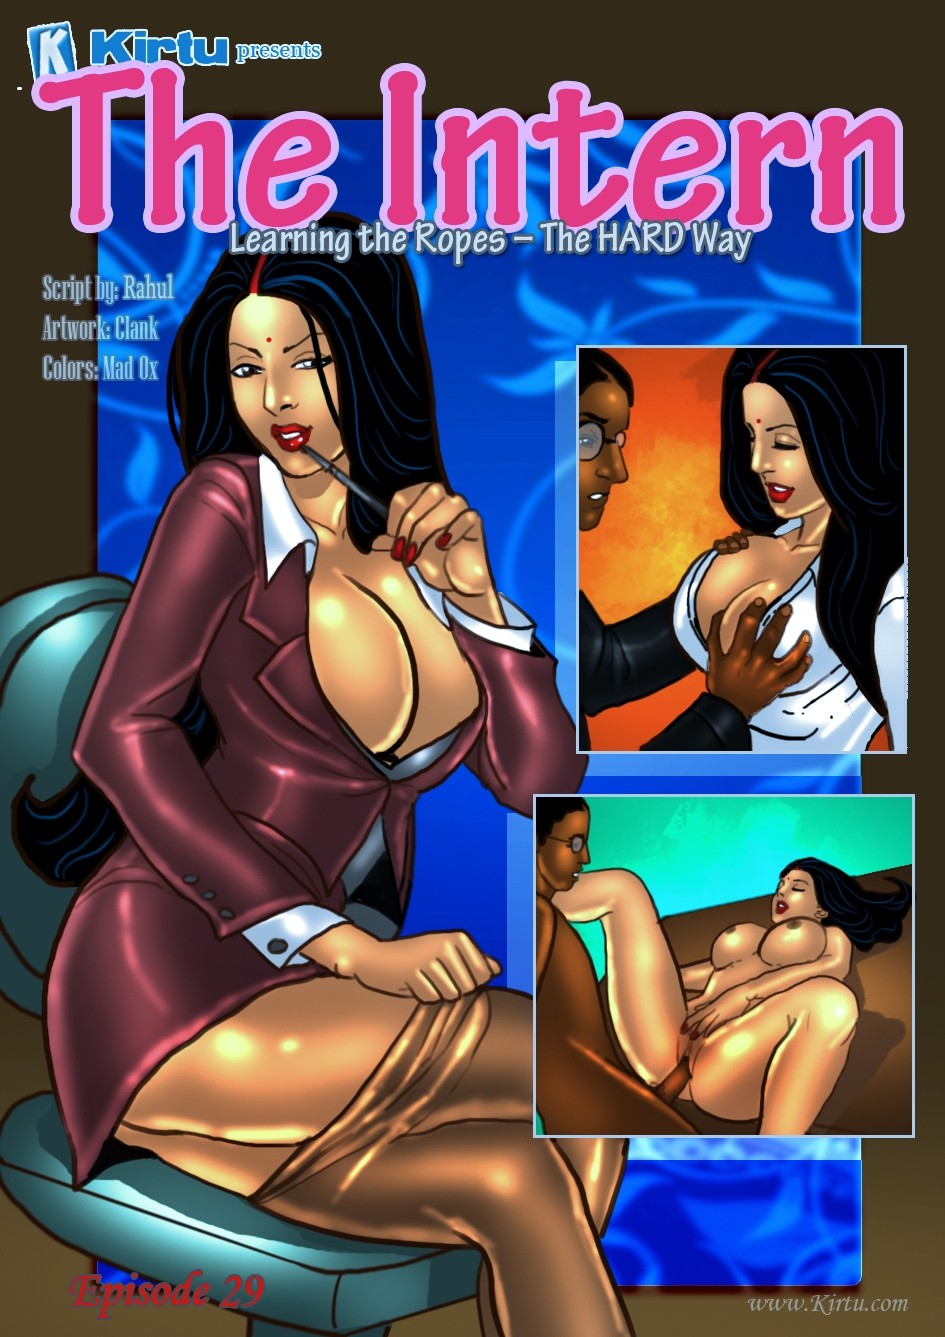 Savita Bhabhi 29 – The Intern porn comics 8 muses